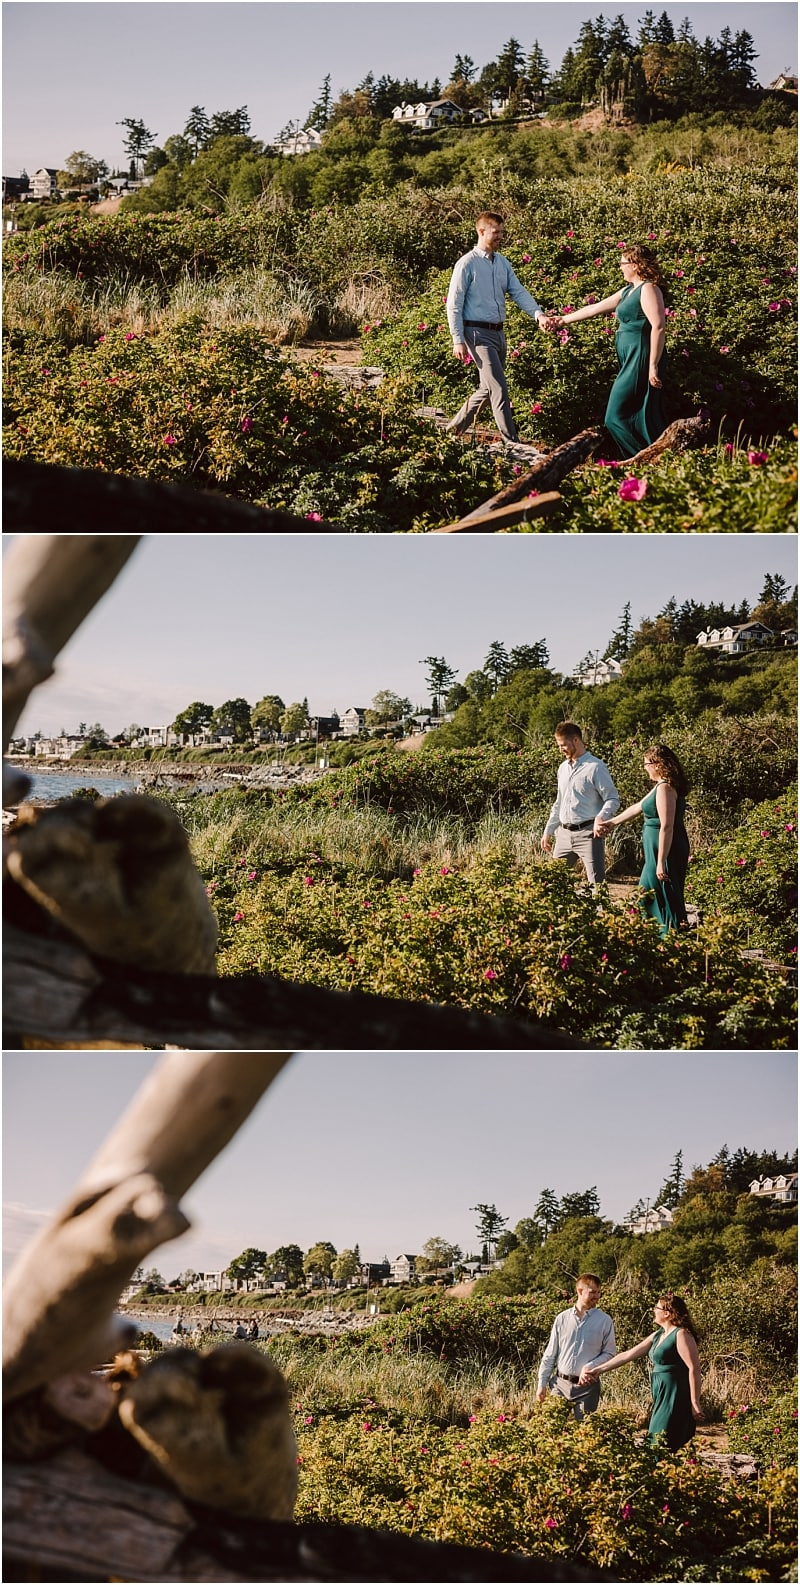 snohomish wedding photo 7780 Seattle and Snohomish Wedding and Engagement Photography by GSquared Weddings Photography